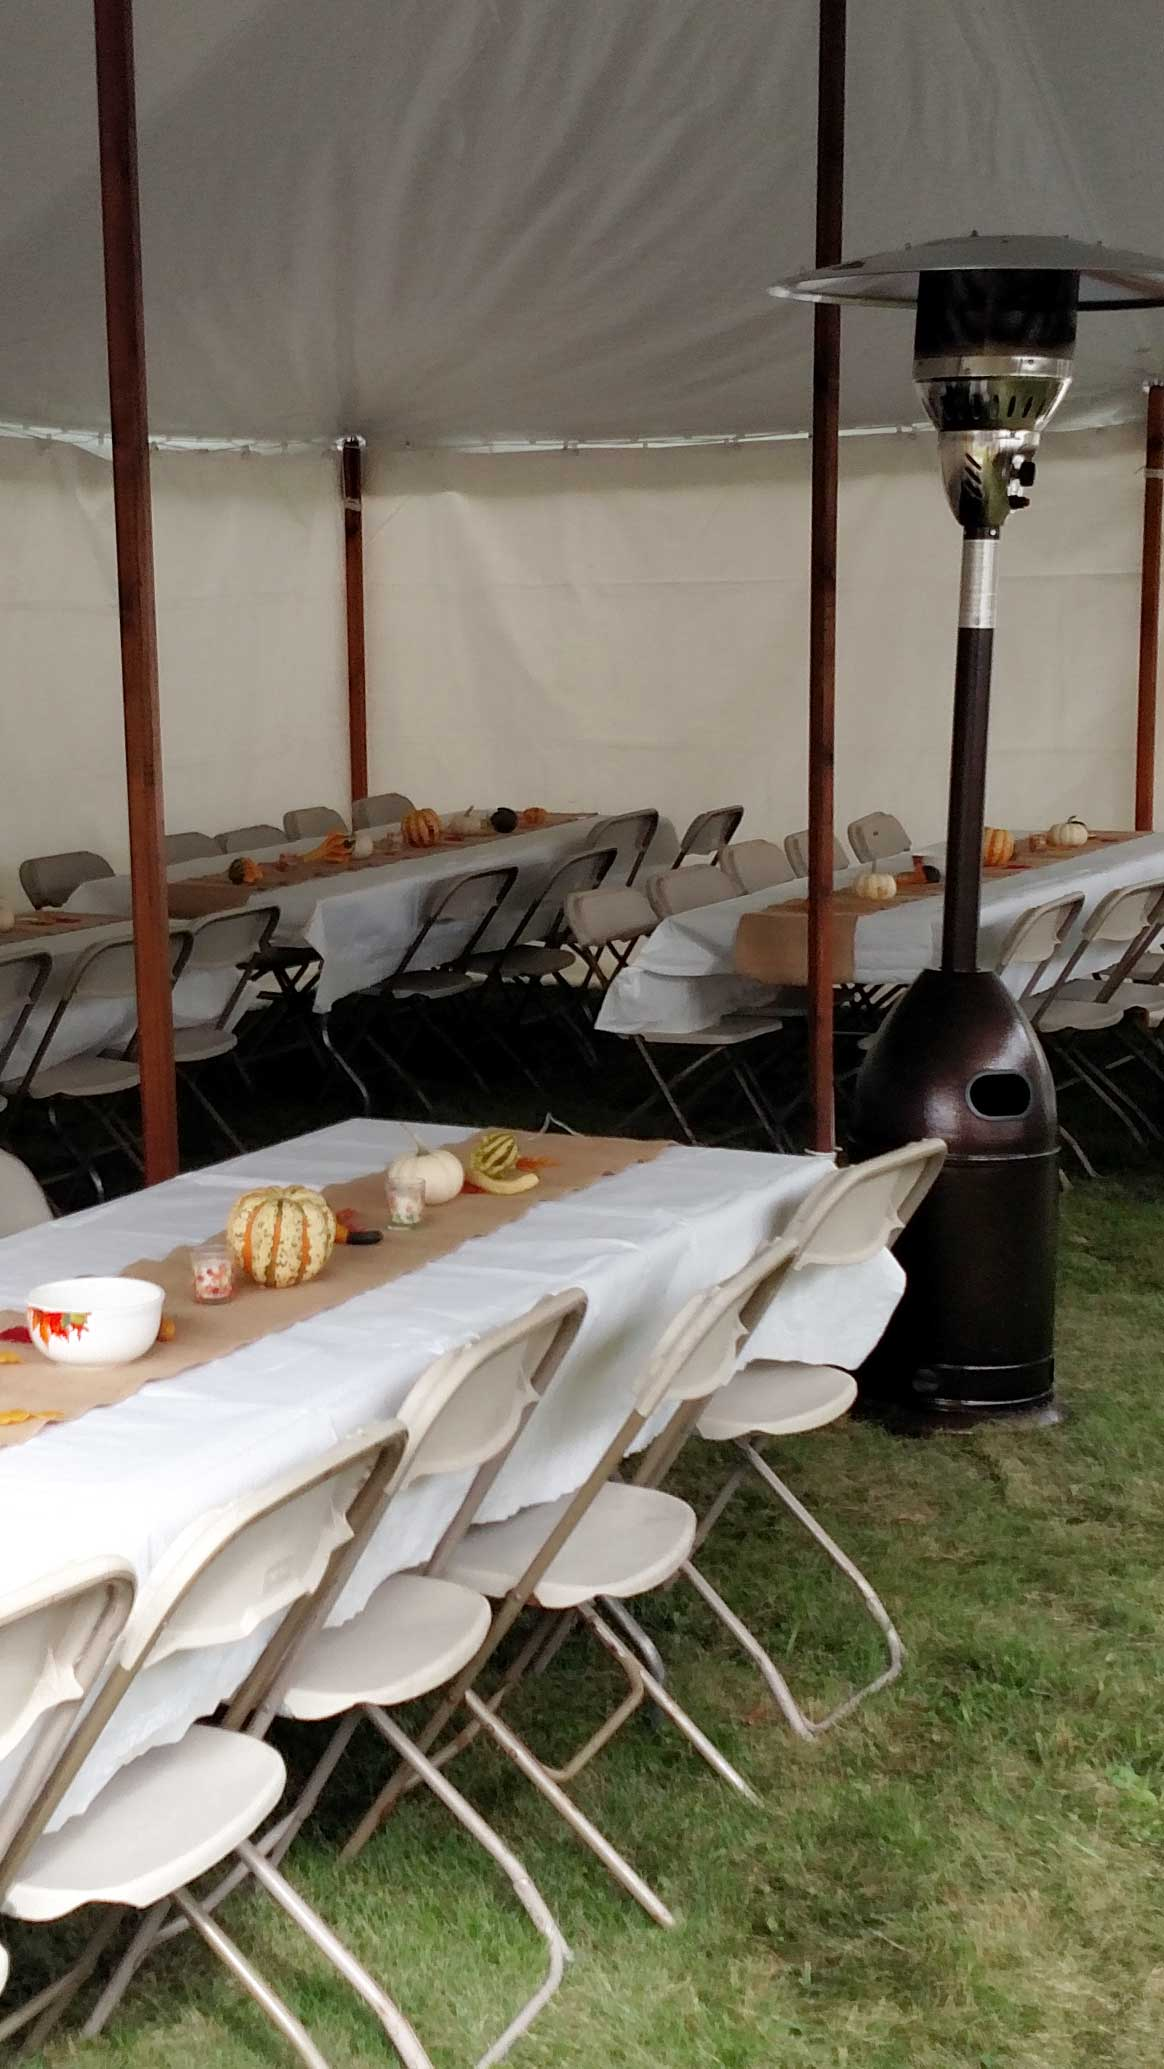 Picture of Erbe Tent Rentals tent heater at party in Schuylerville, NY